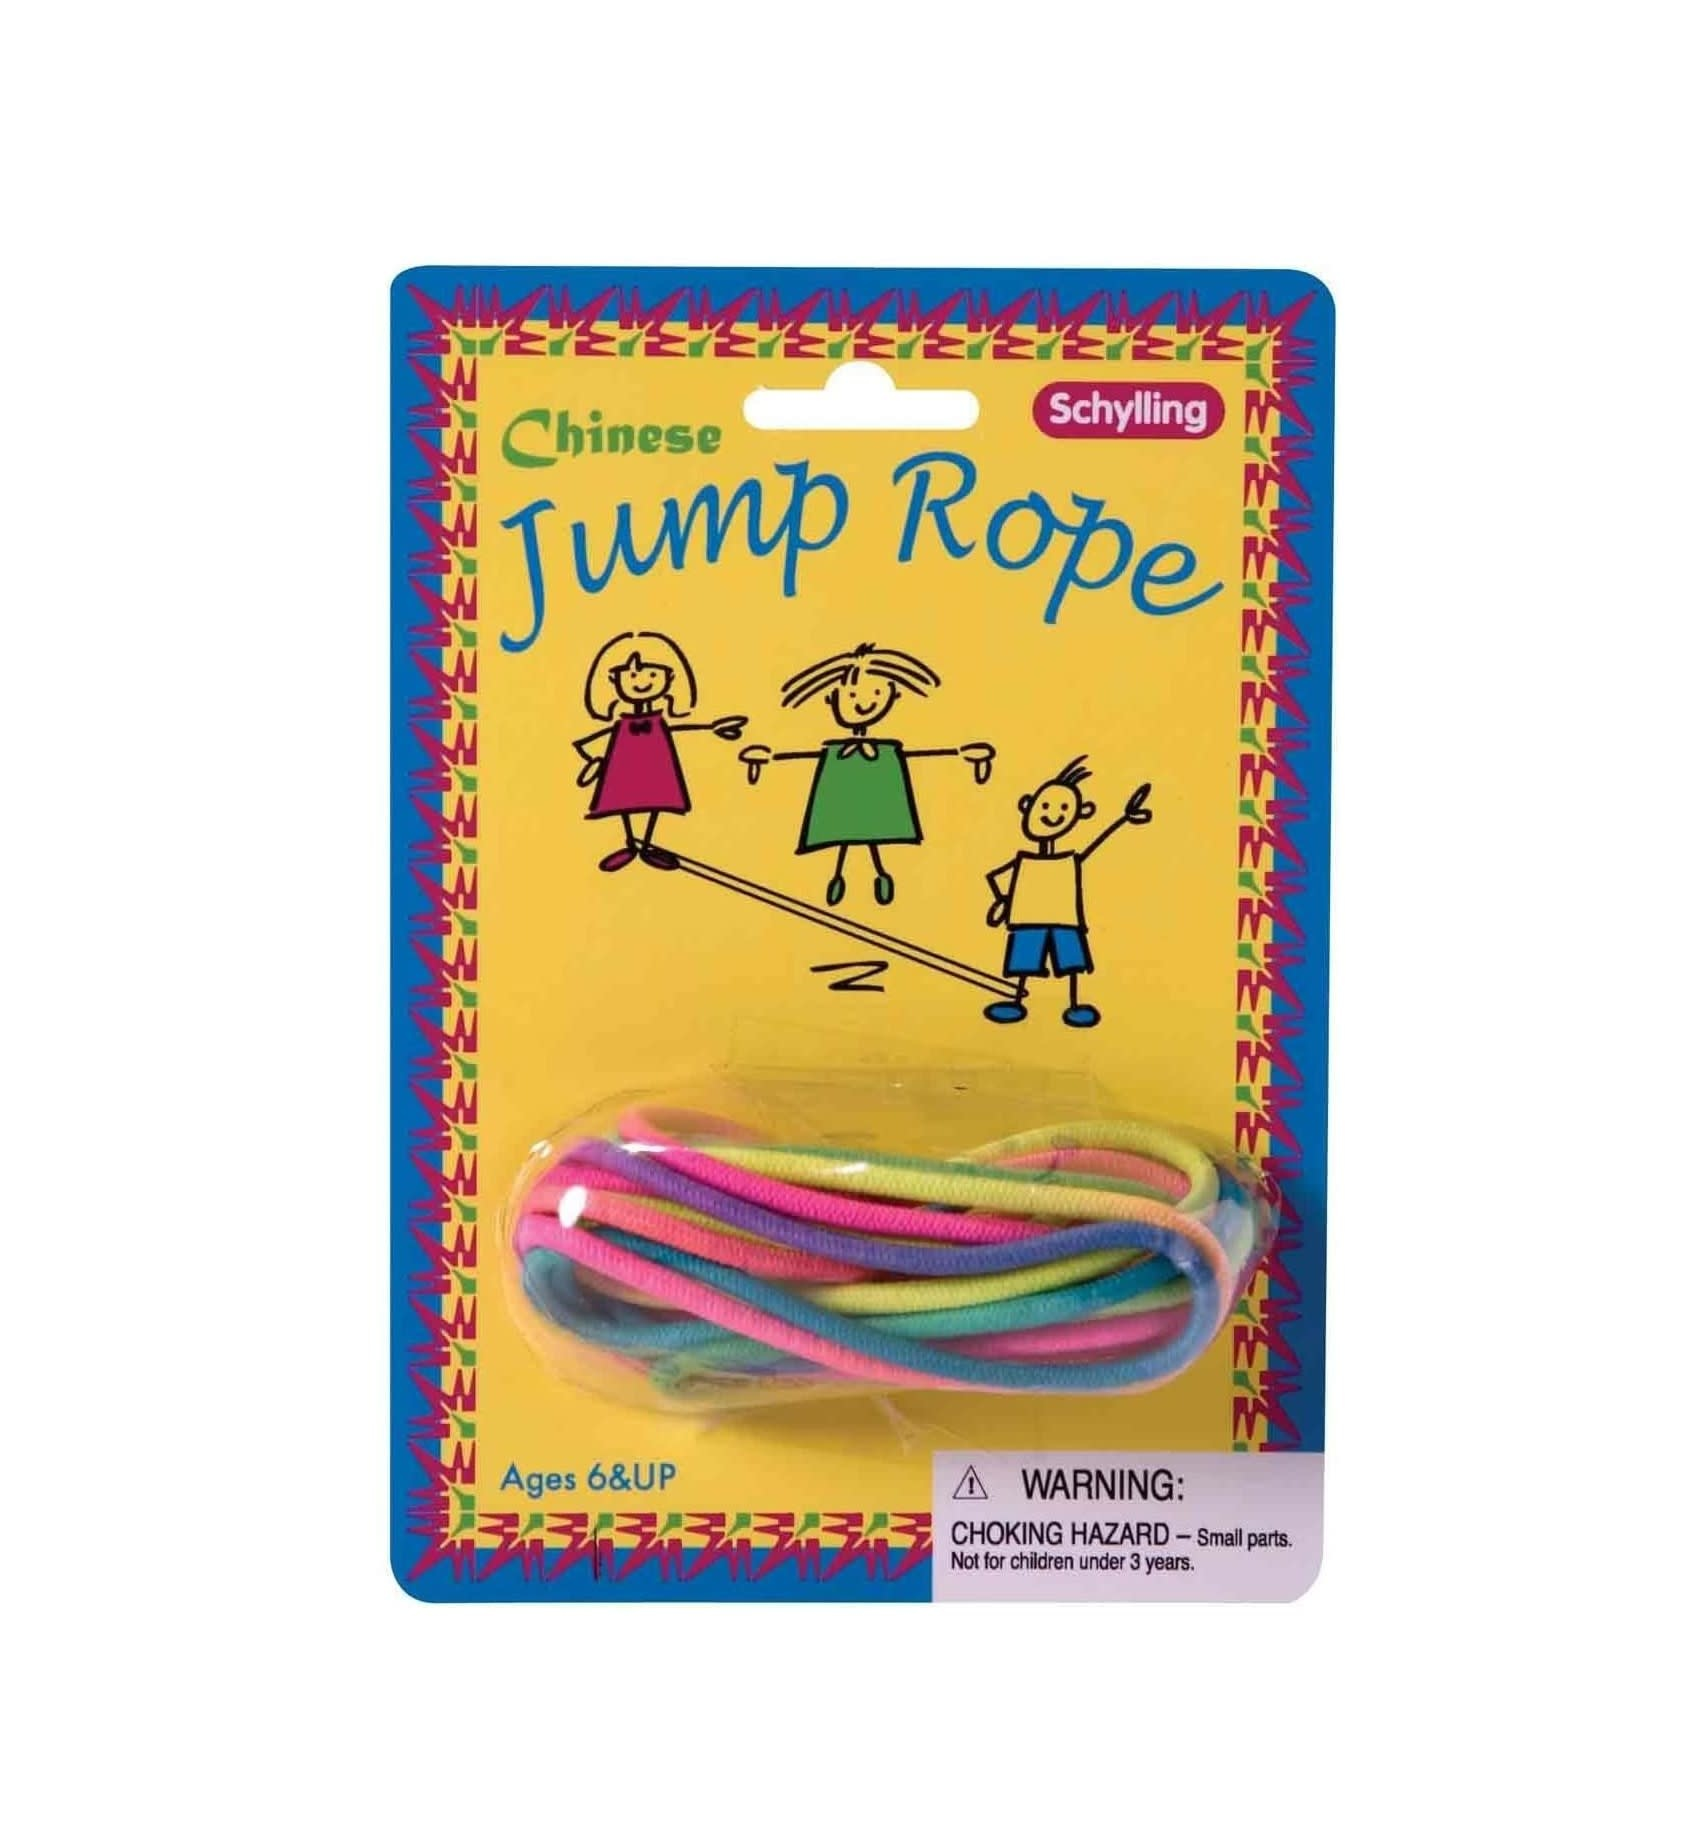 Schylling Chinese Jumprope